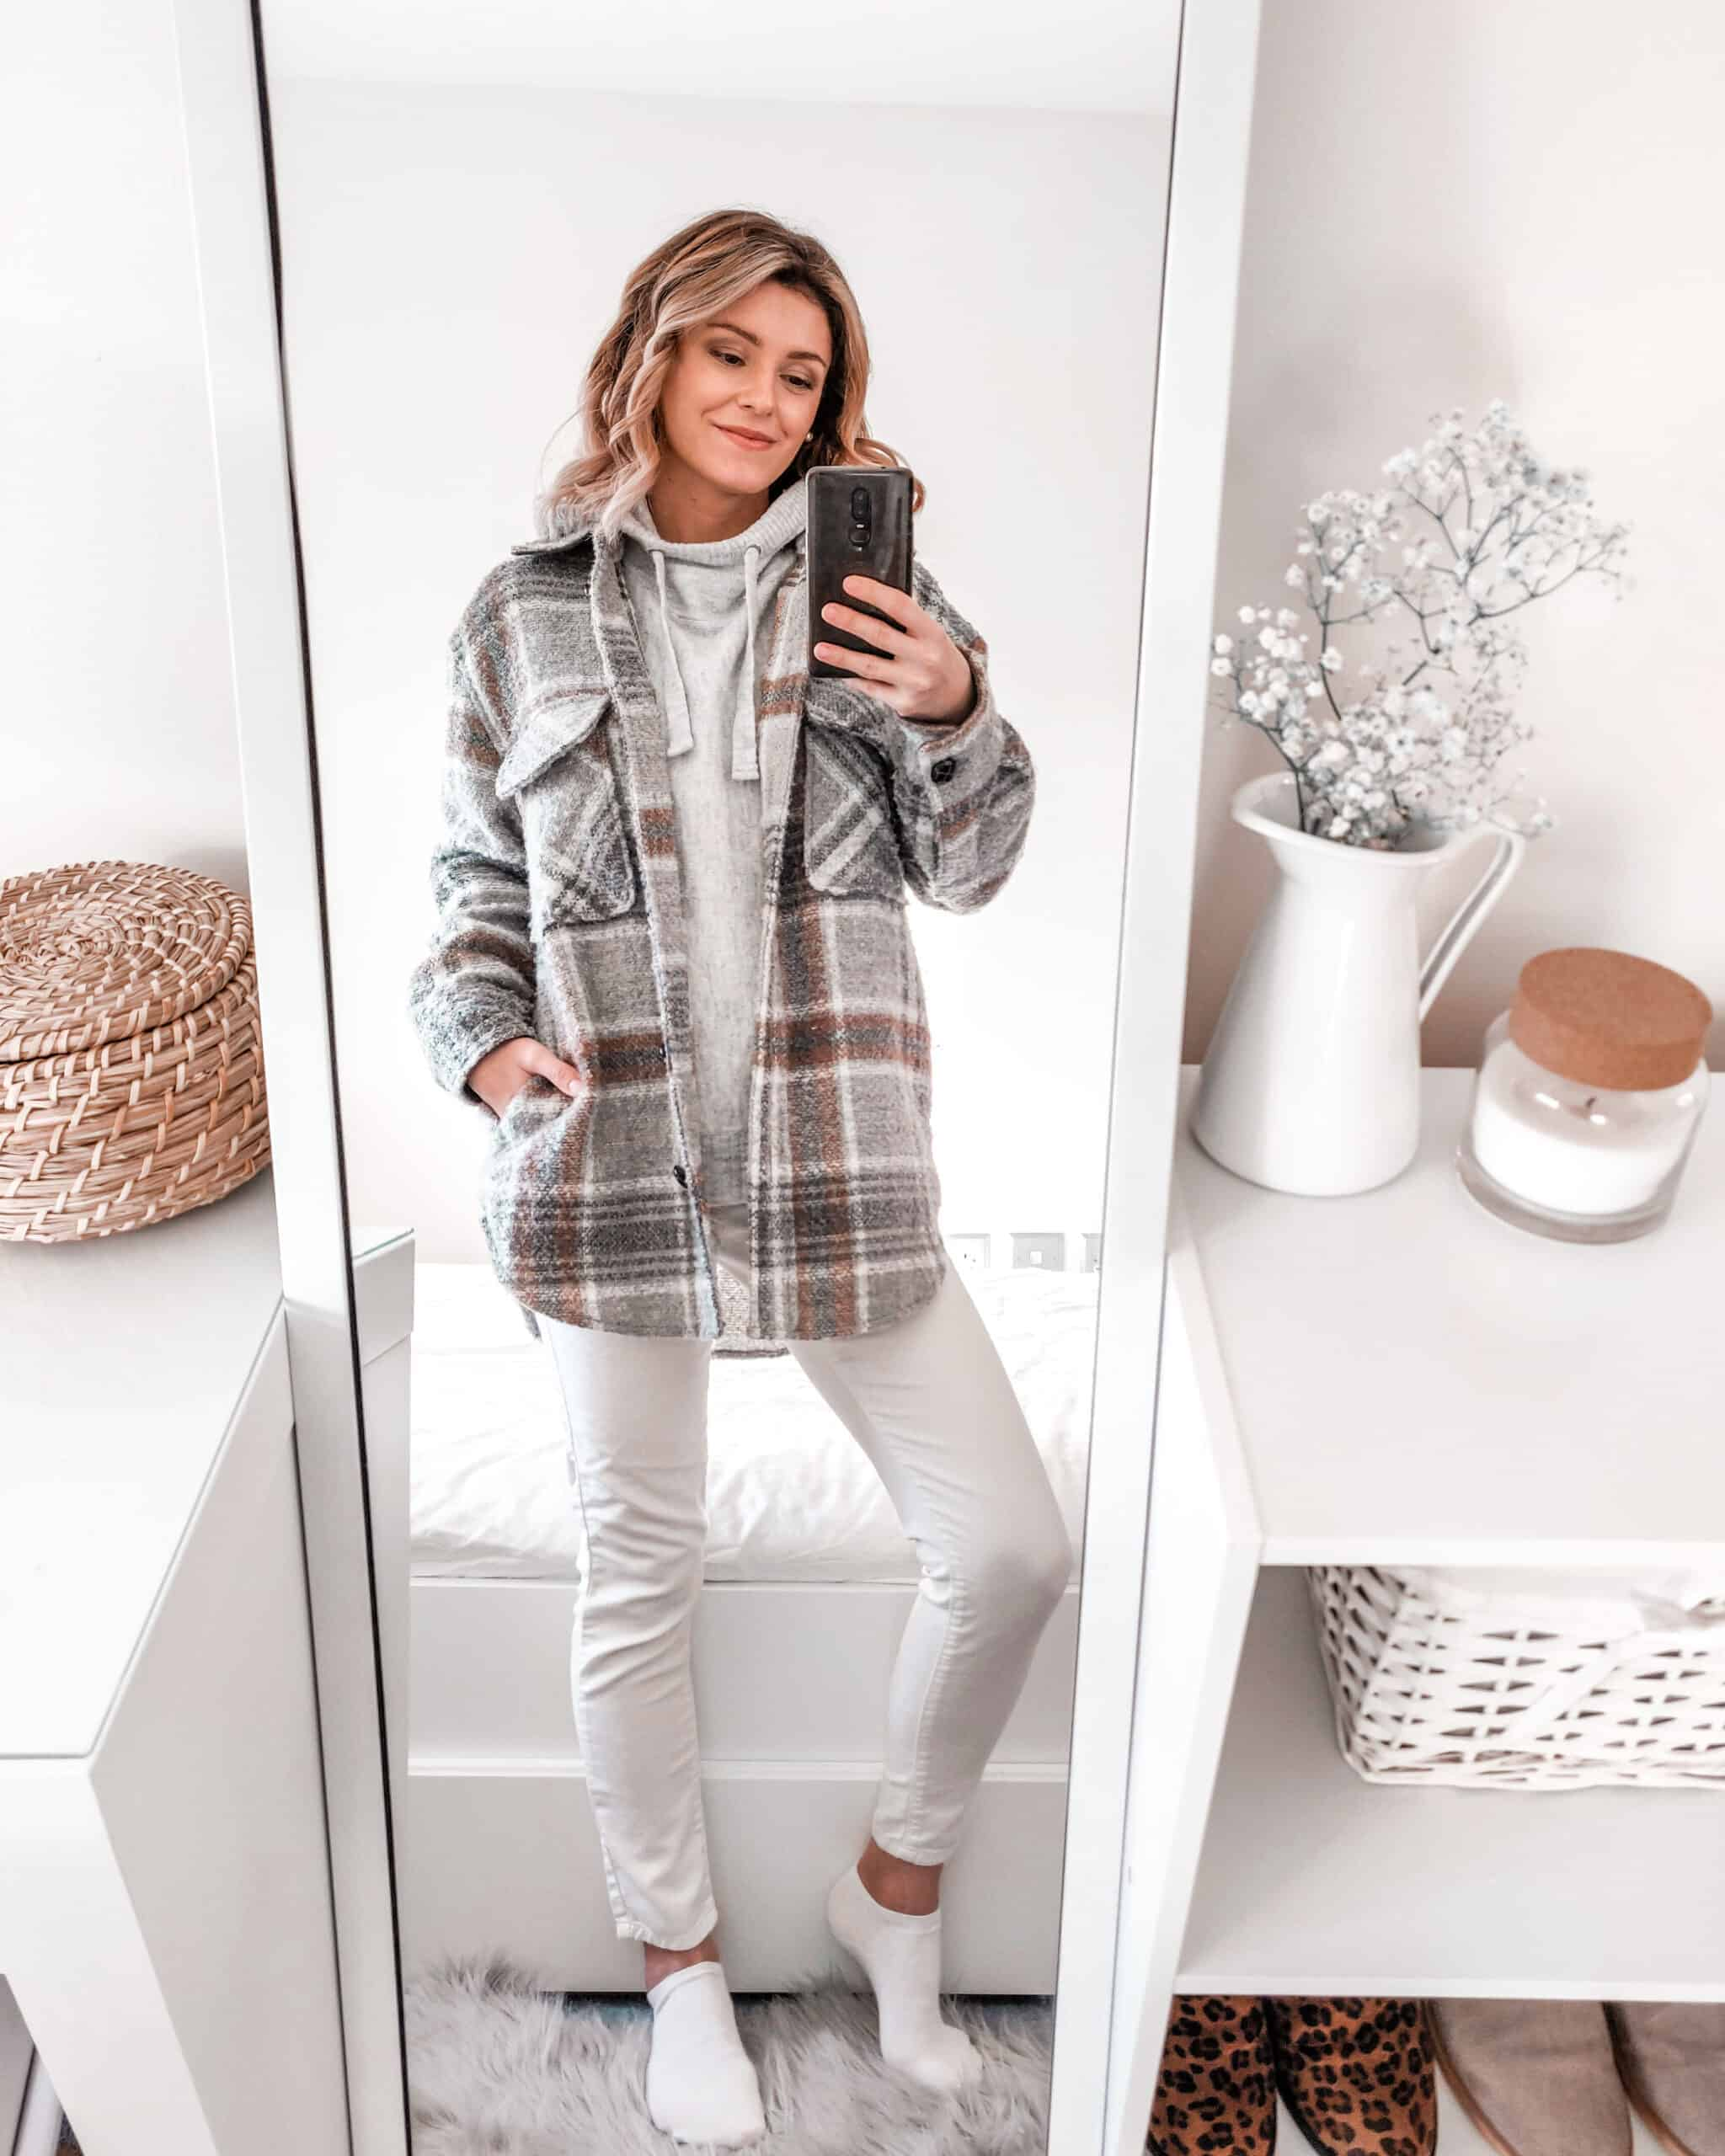 primark check jacket outfit with grey hoodie and white jeans